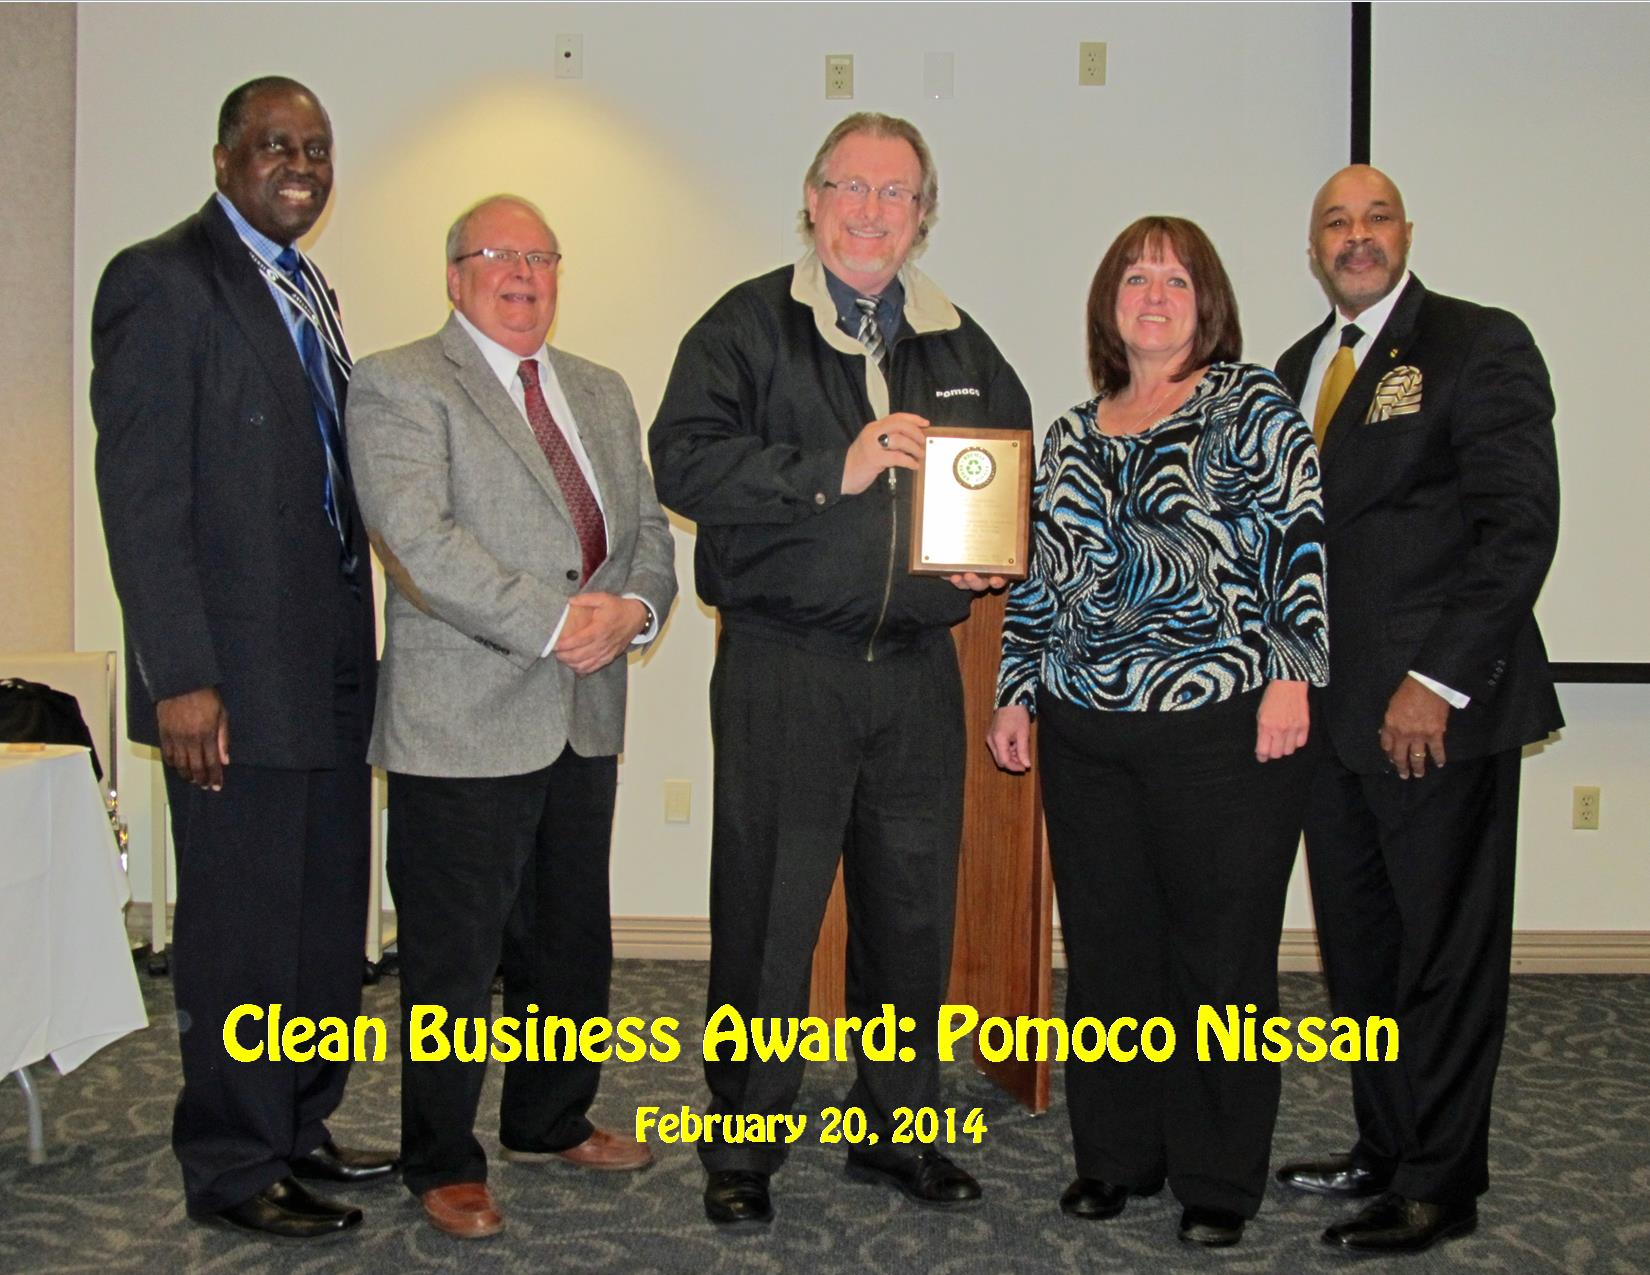 2-20-14 Clean Business Award Pomoco Nissan